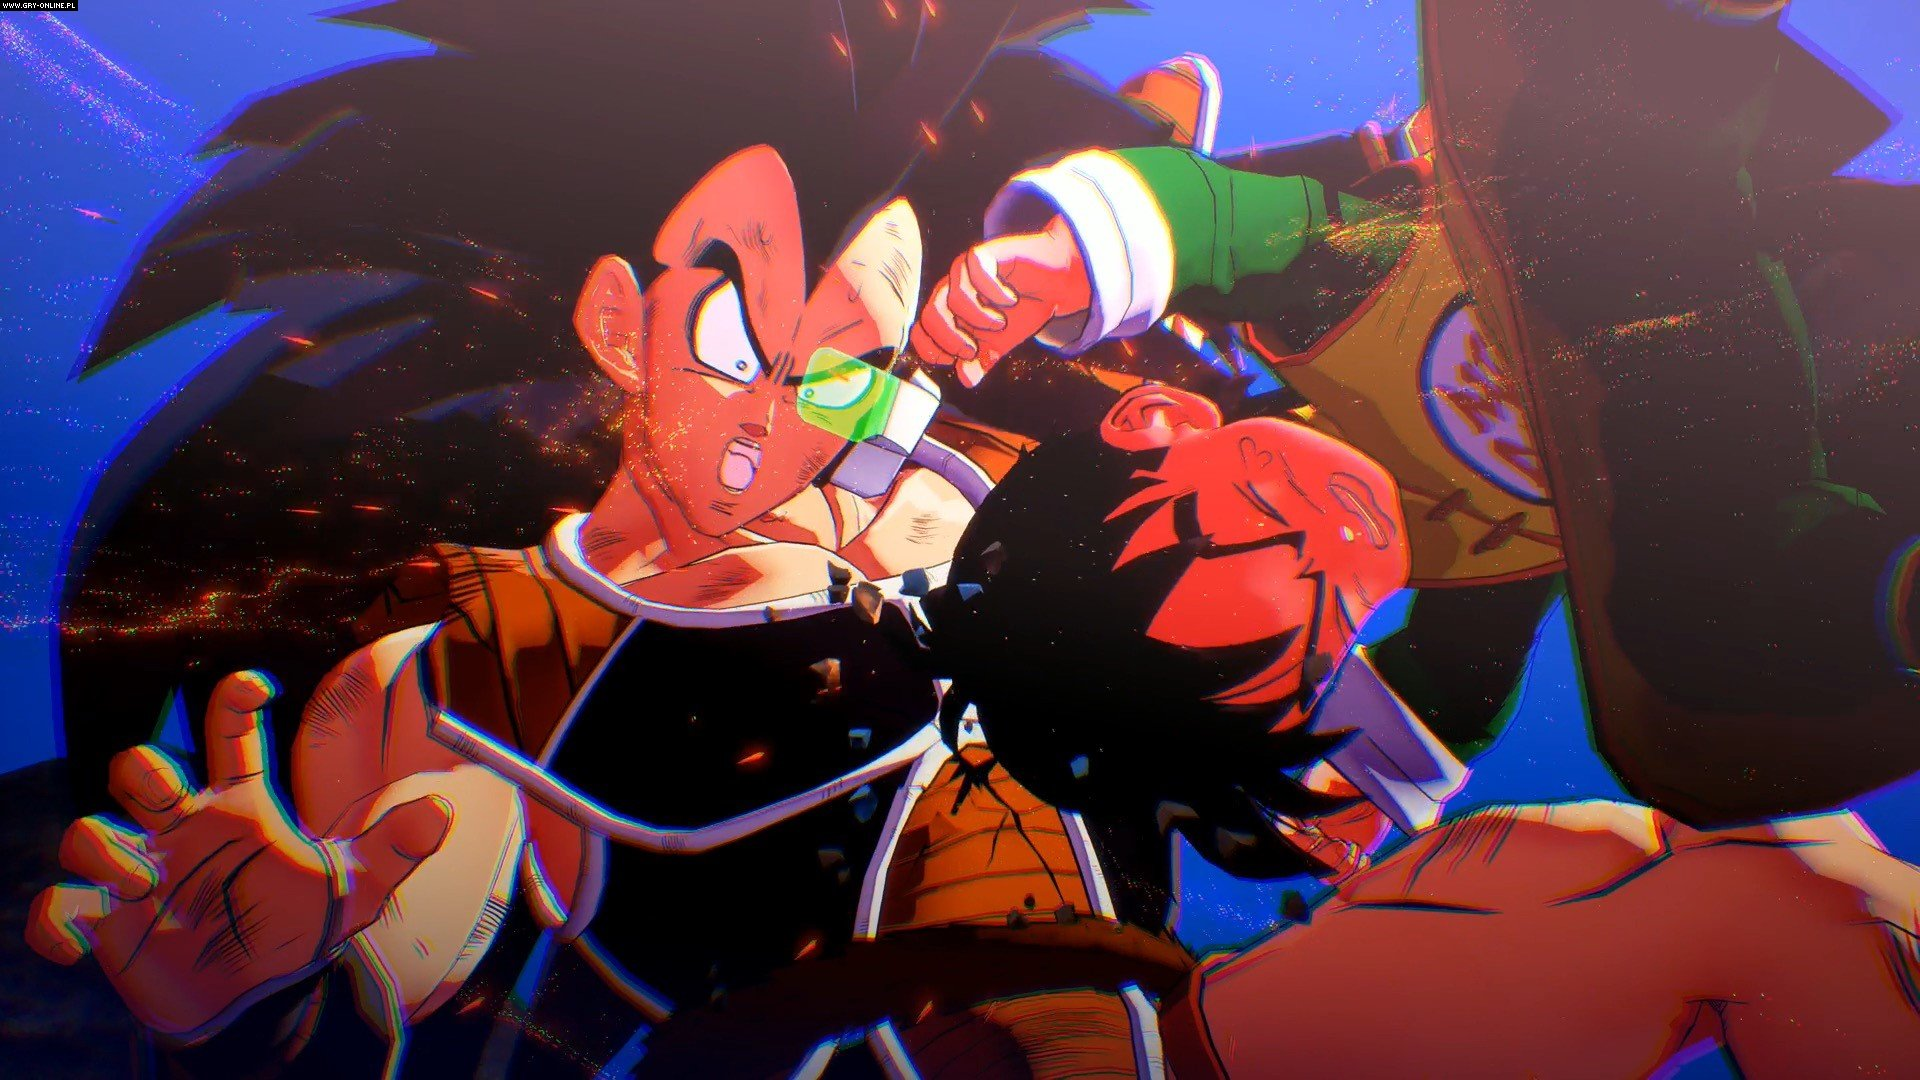 Dragon Ball Z: Kakarot PC, PS4, XONE Games Image 87/109, Cyberconnect2, Bandai Namco Entertainment